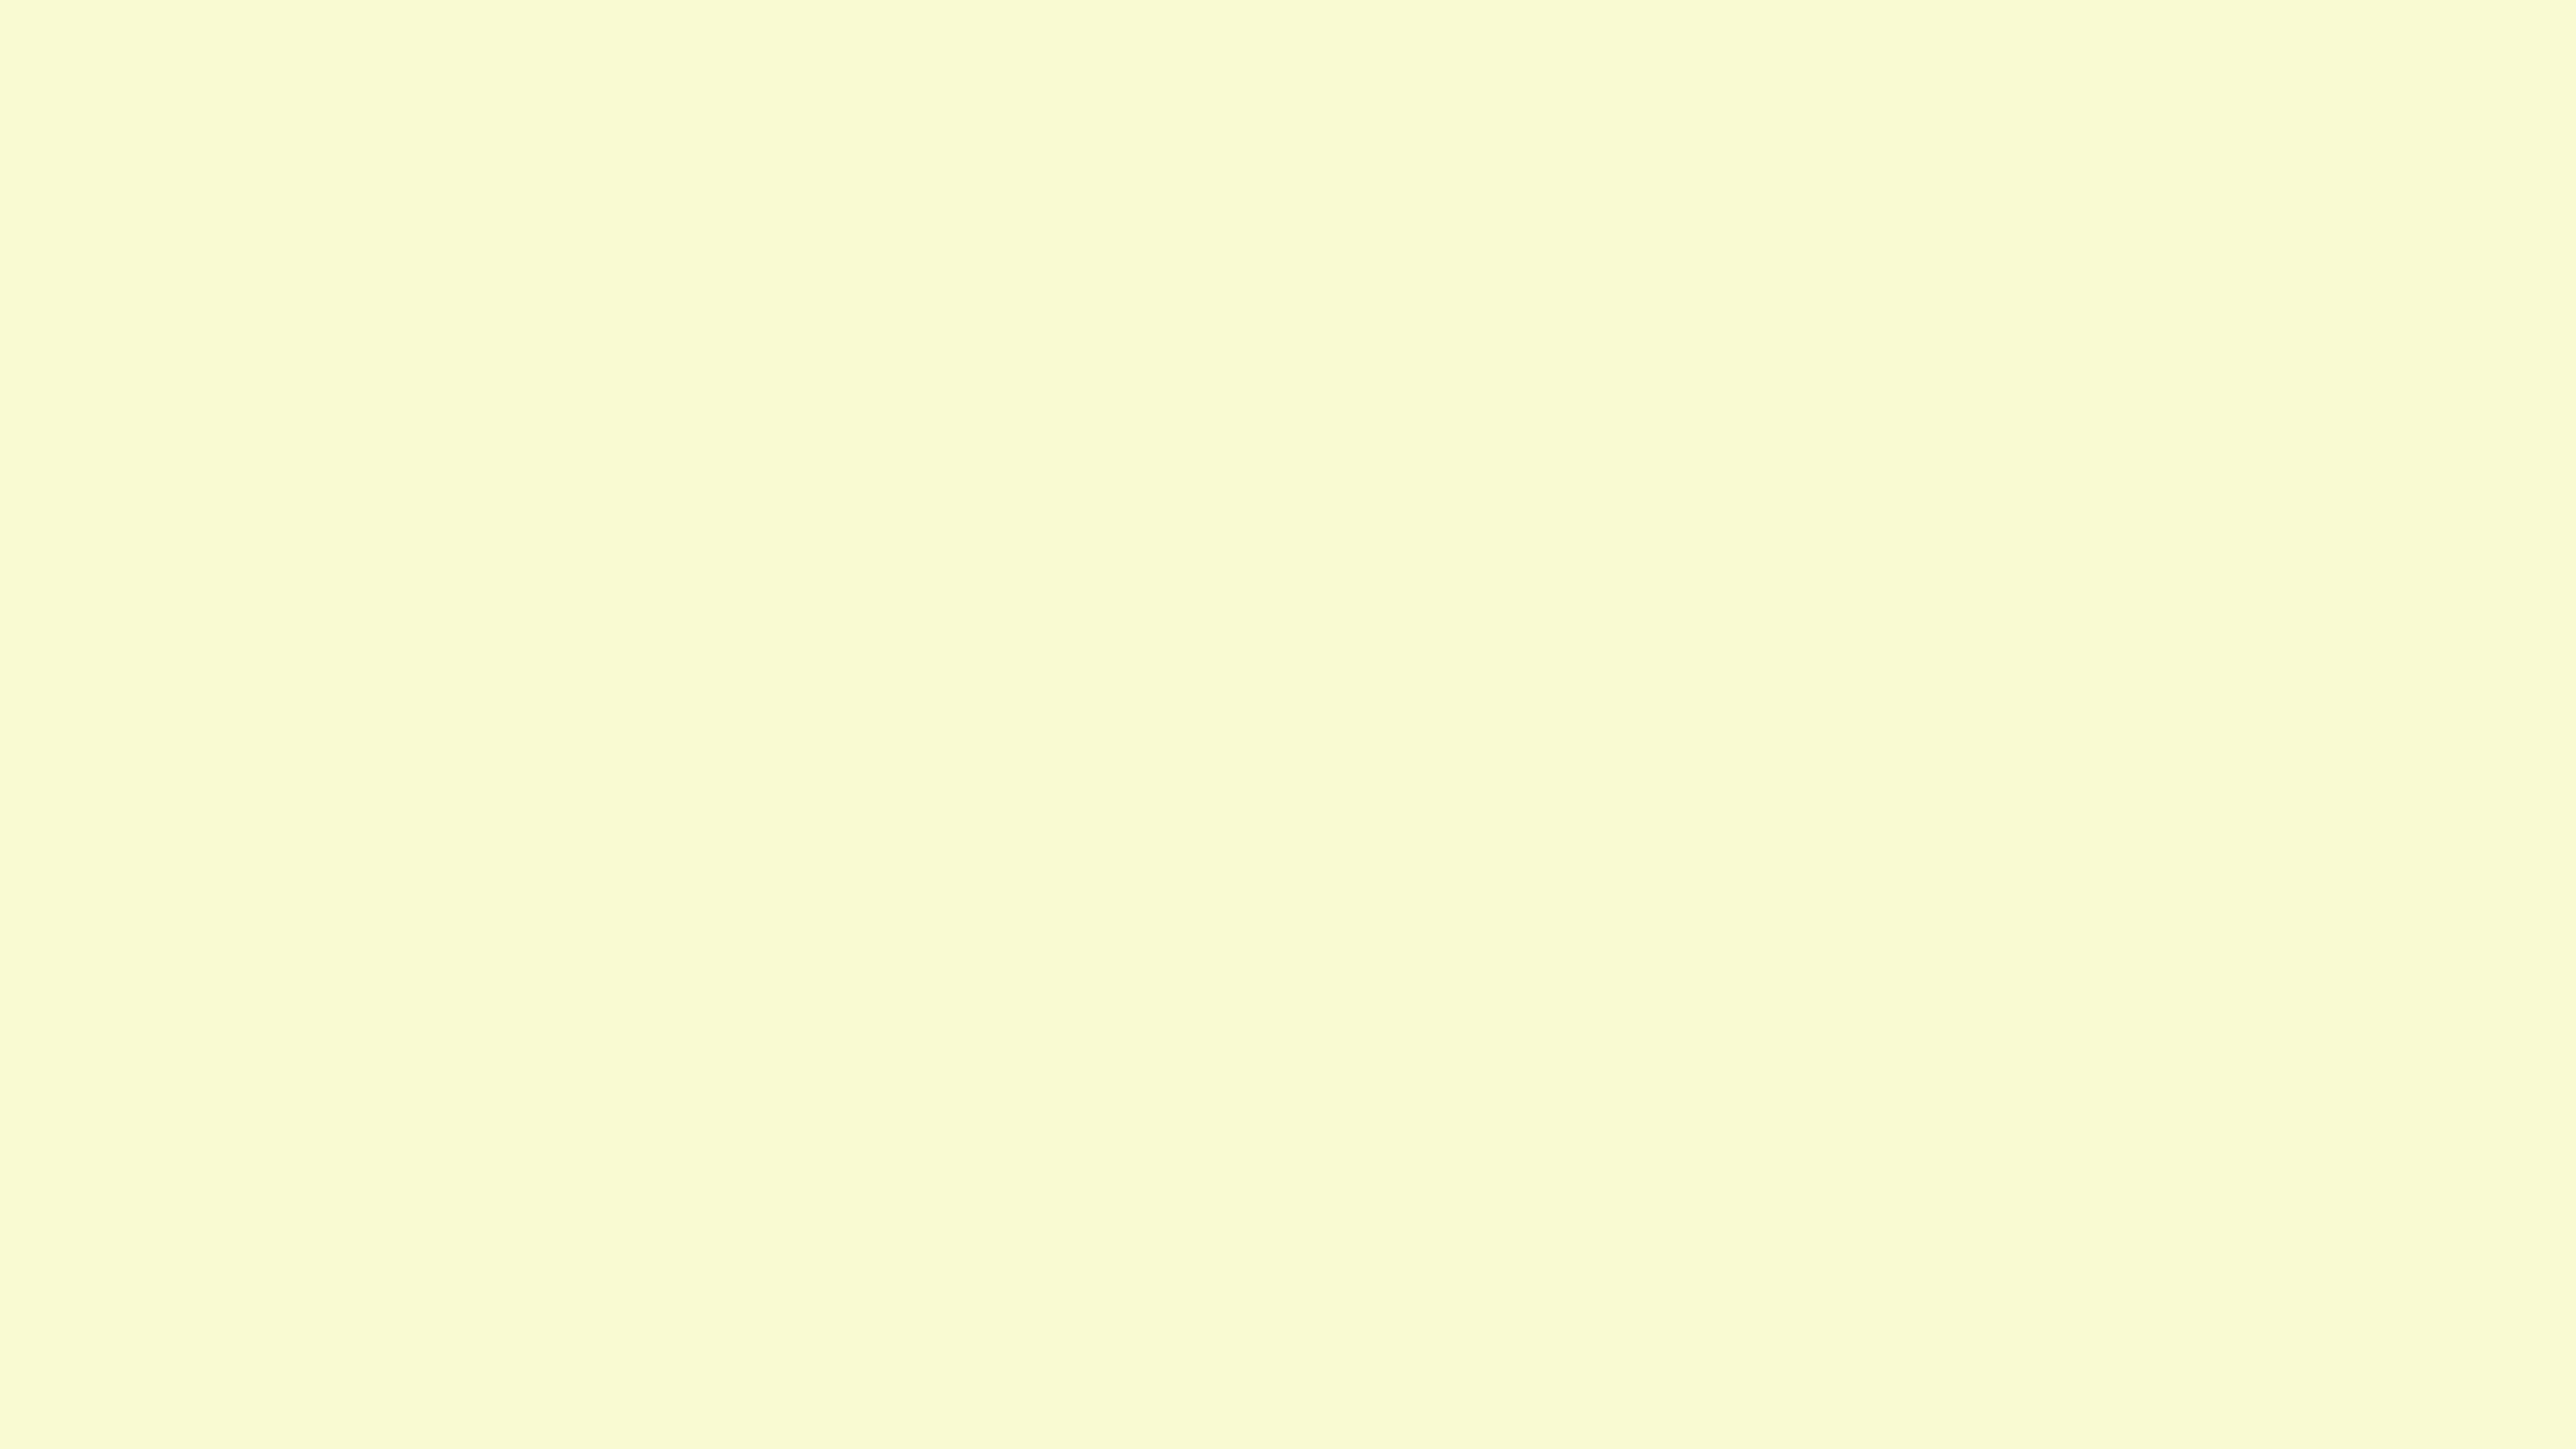 7680x4320 Light Goldenrod Yellow Solid Color Background